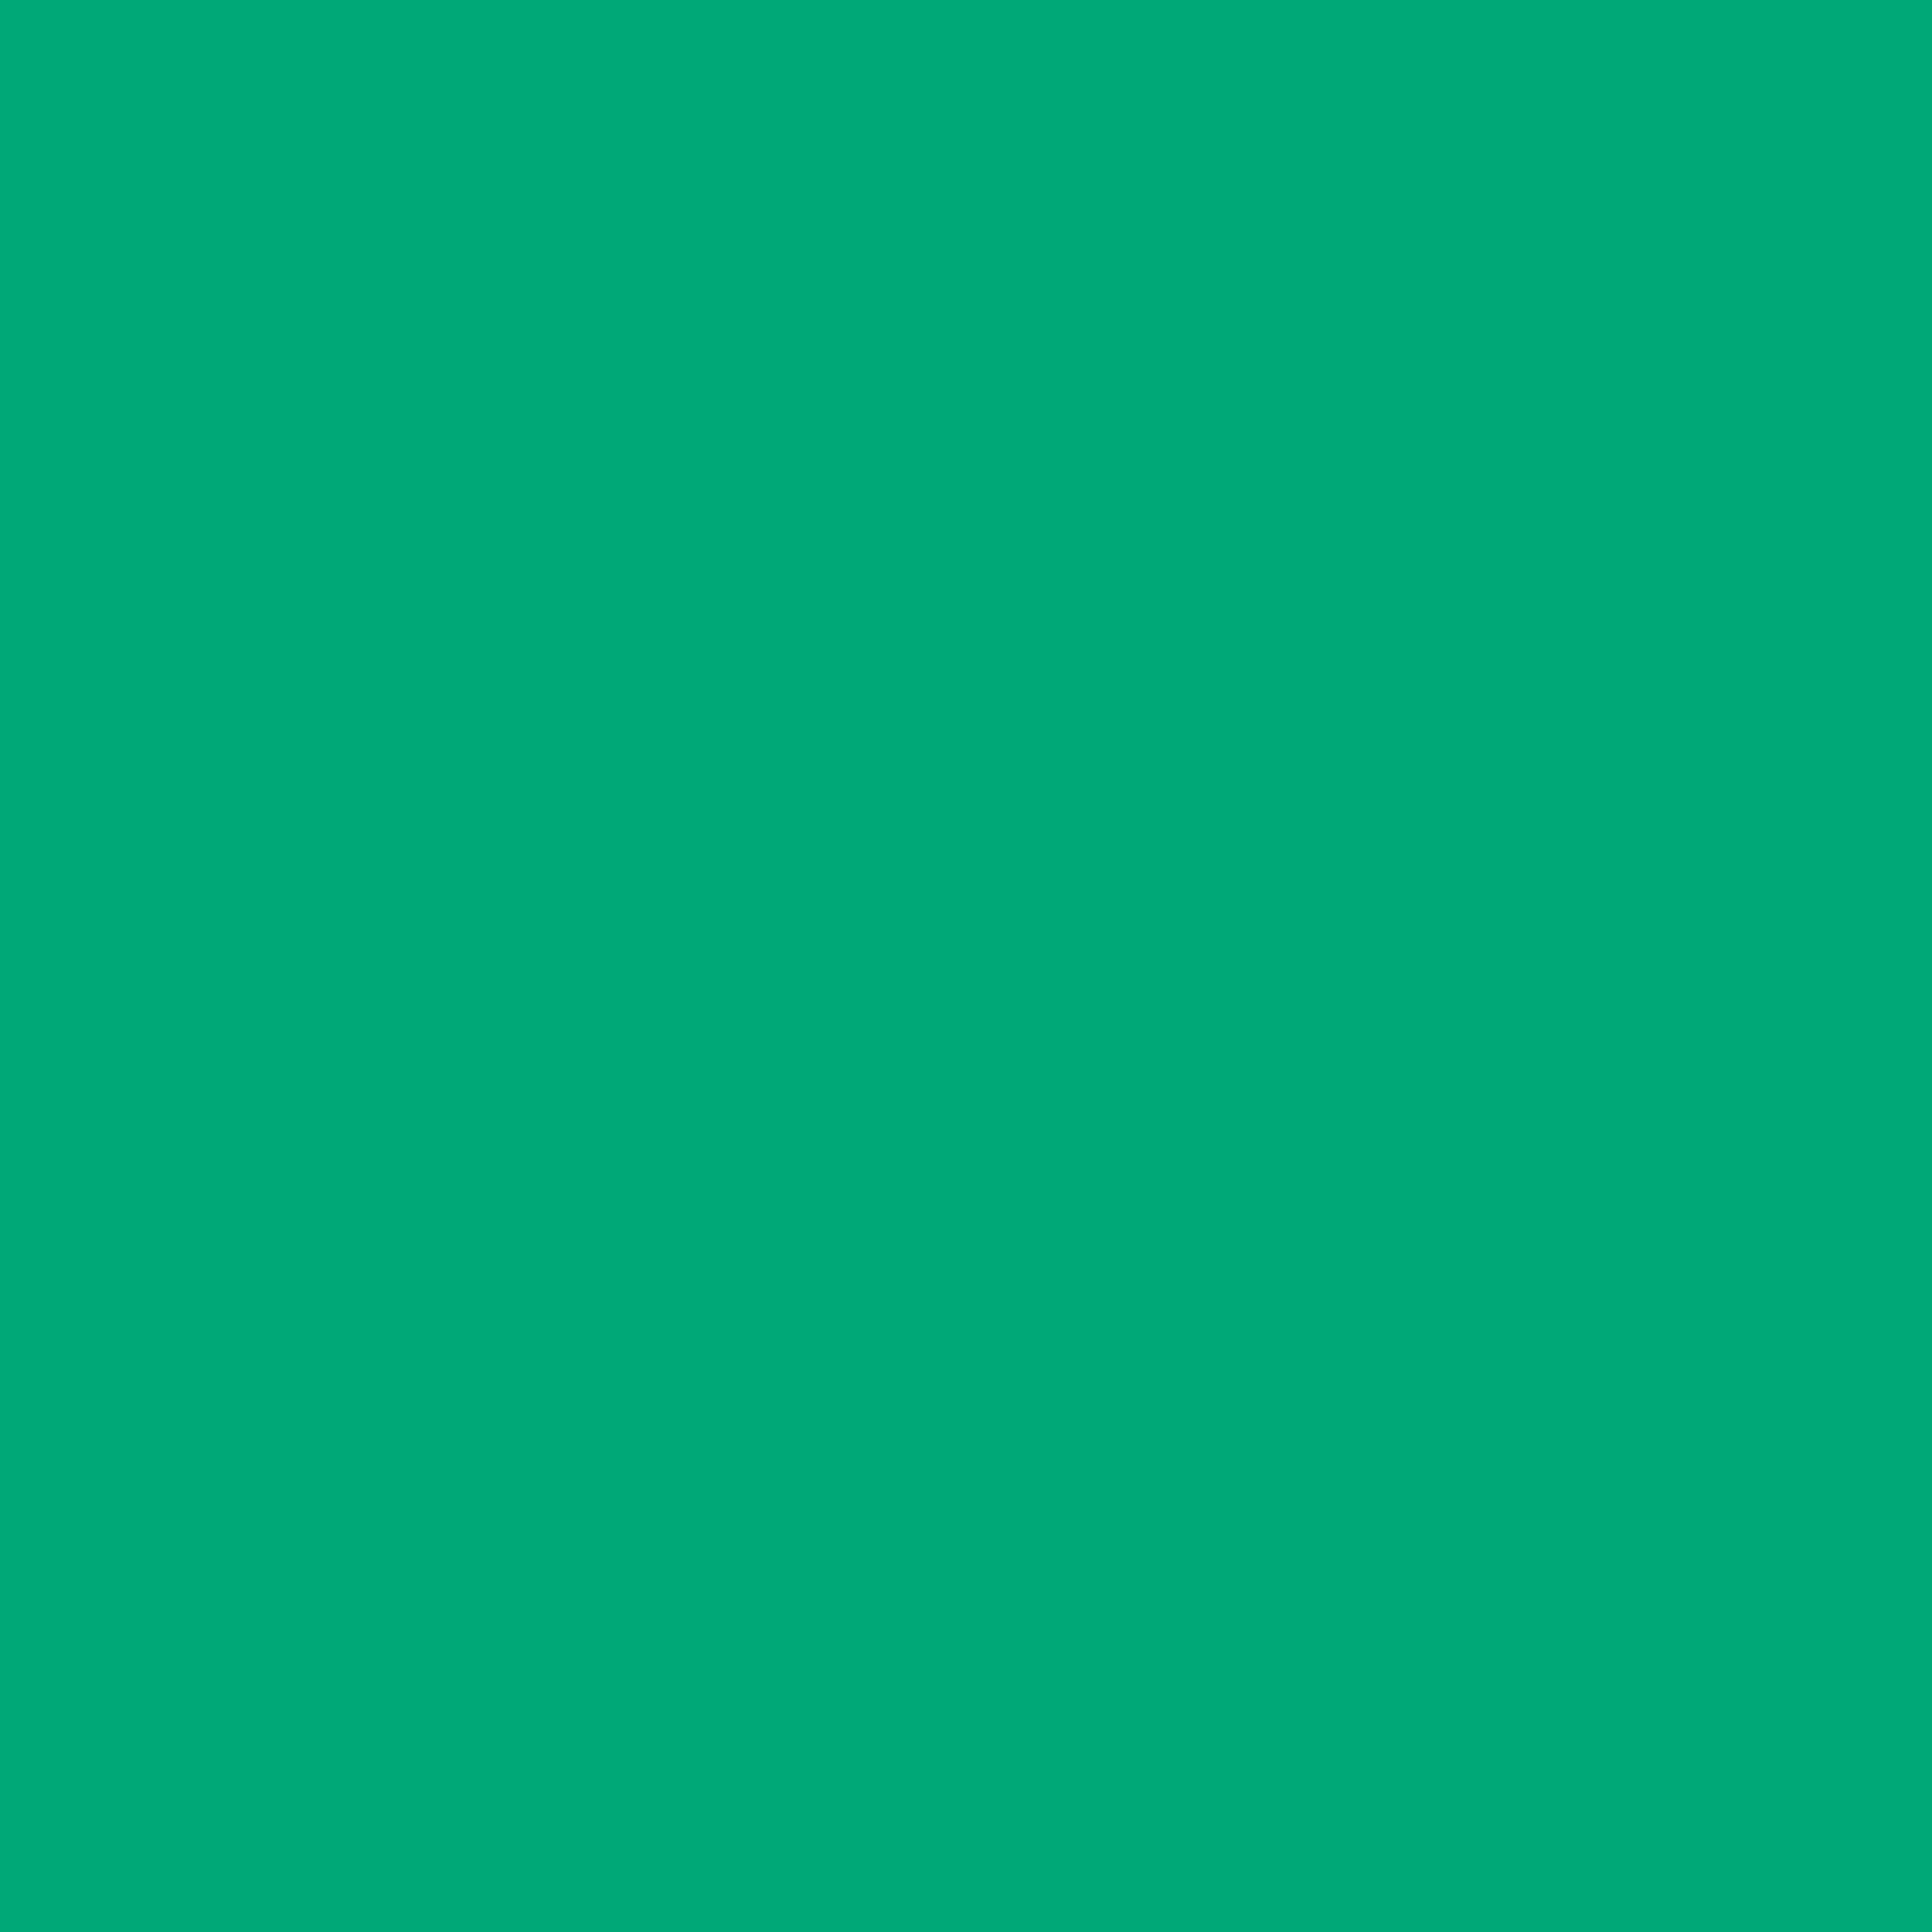 2048x2048 Green Munsell Solid Color Background